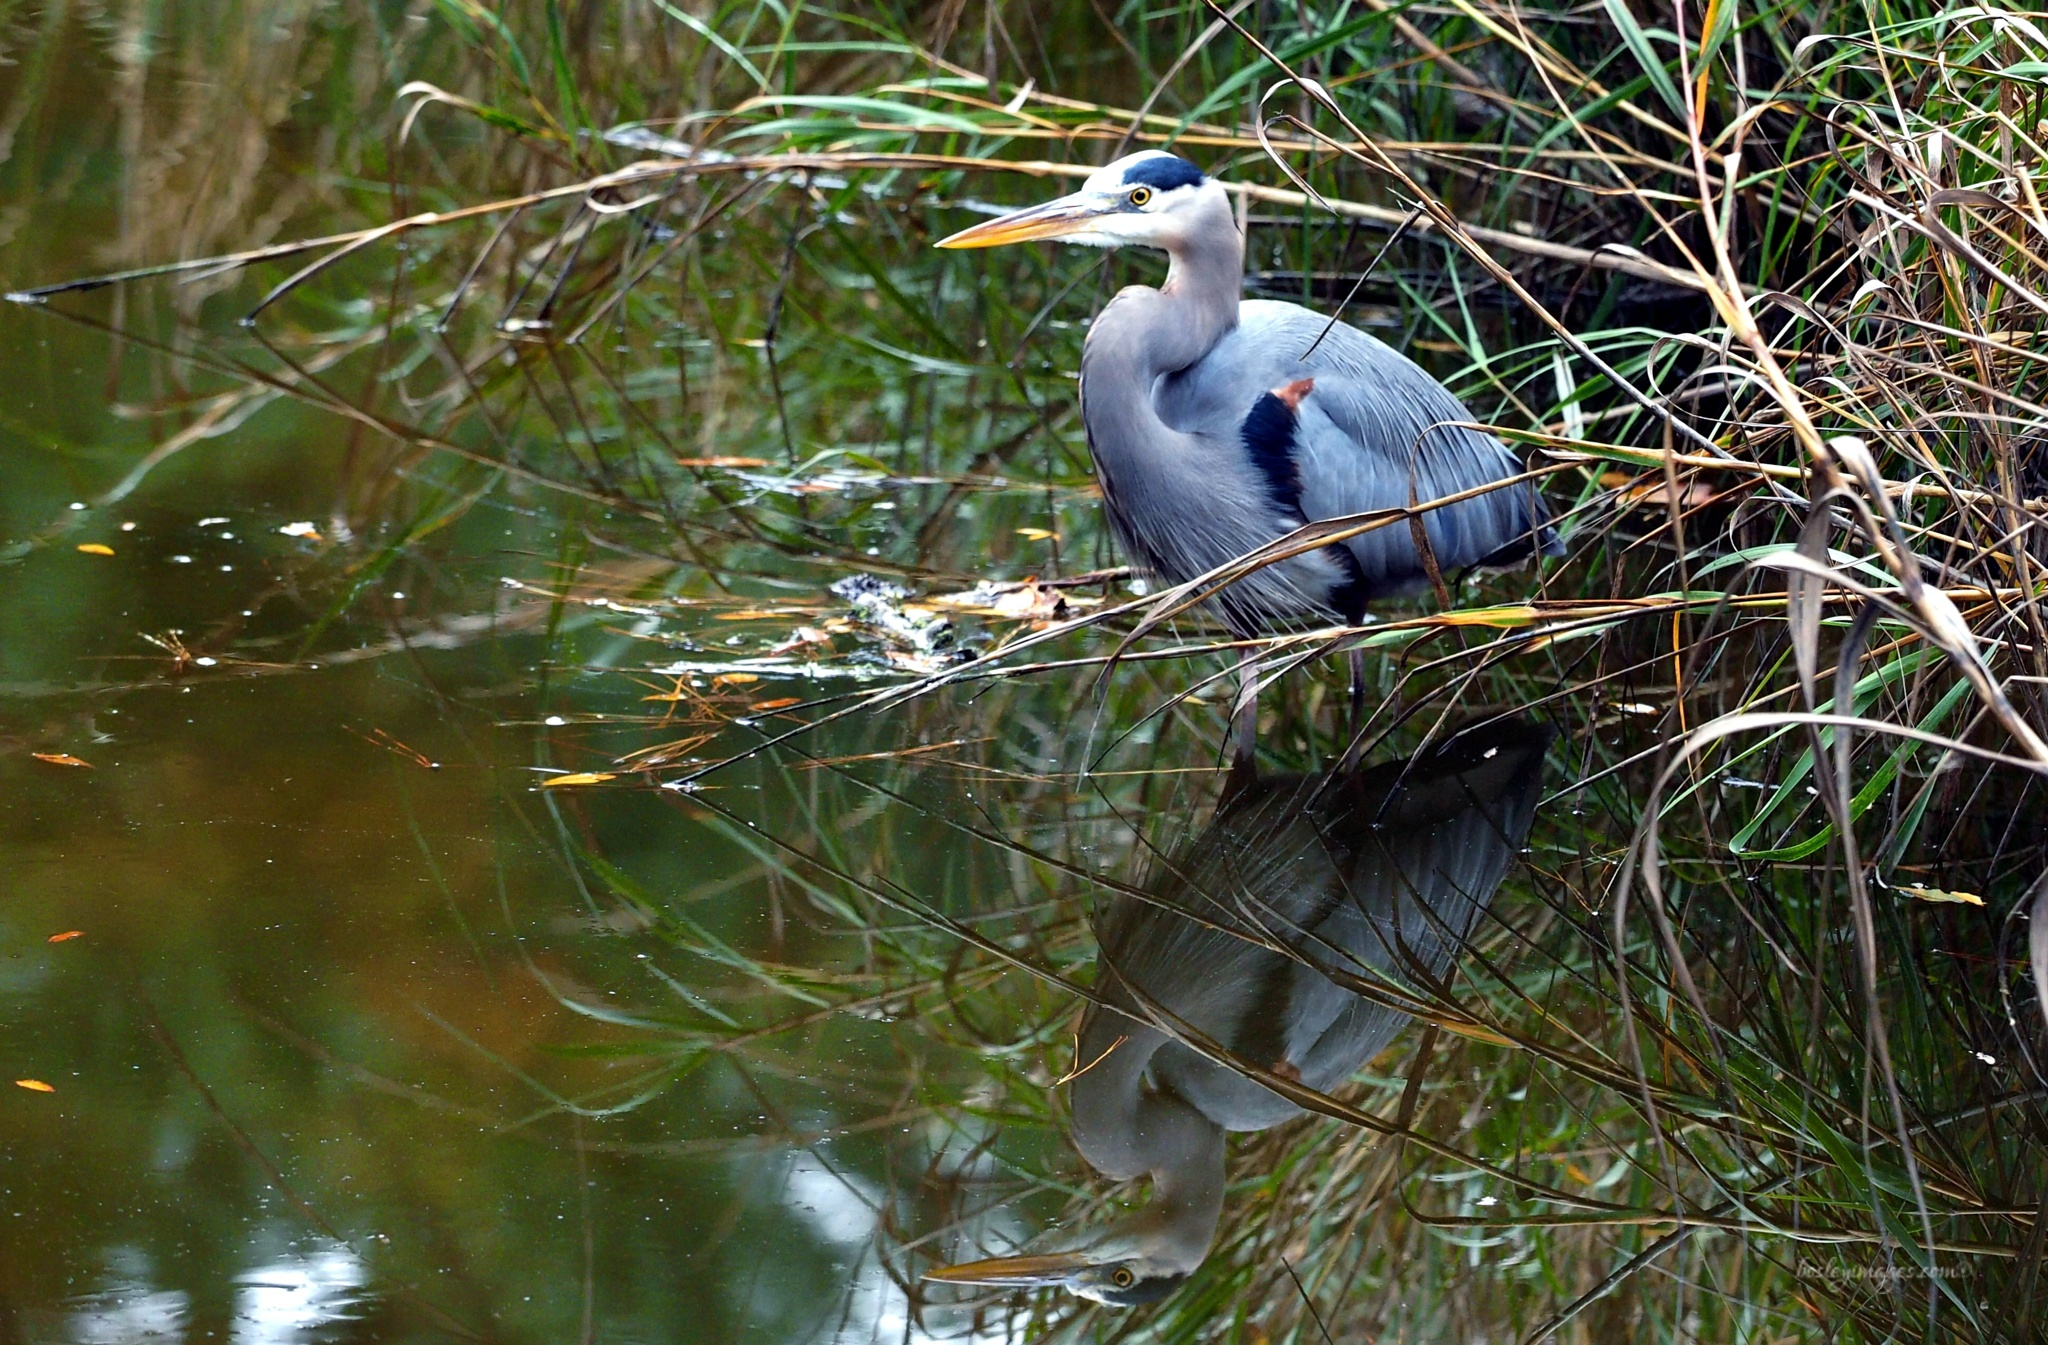 Blue Heron Reflection by william.l.bosley